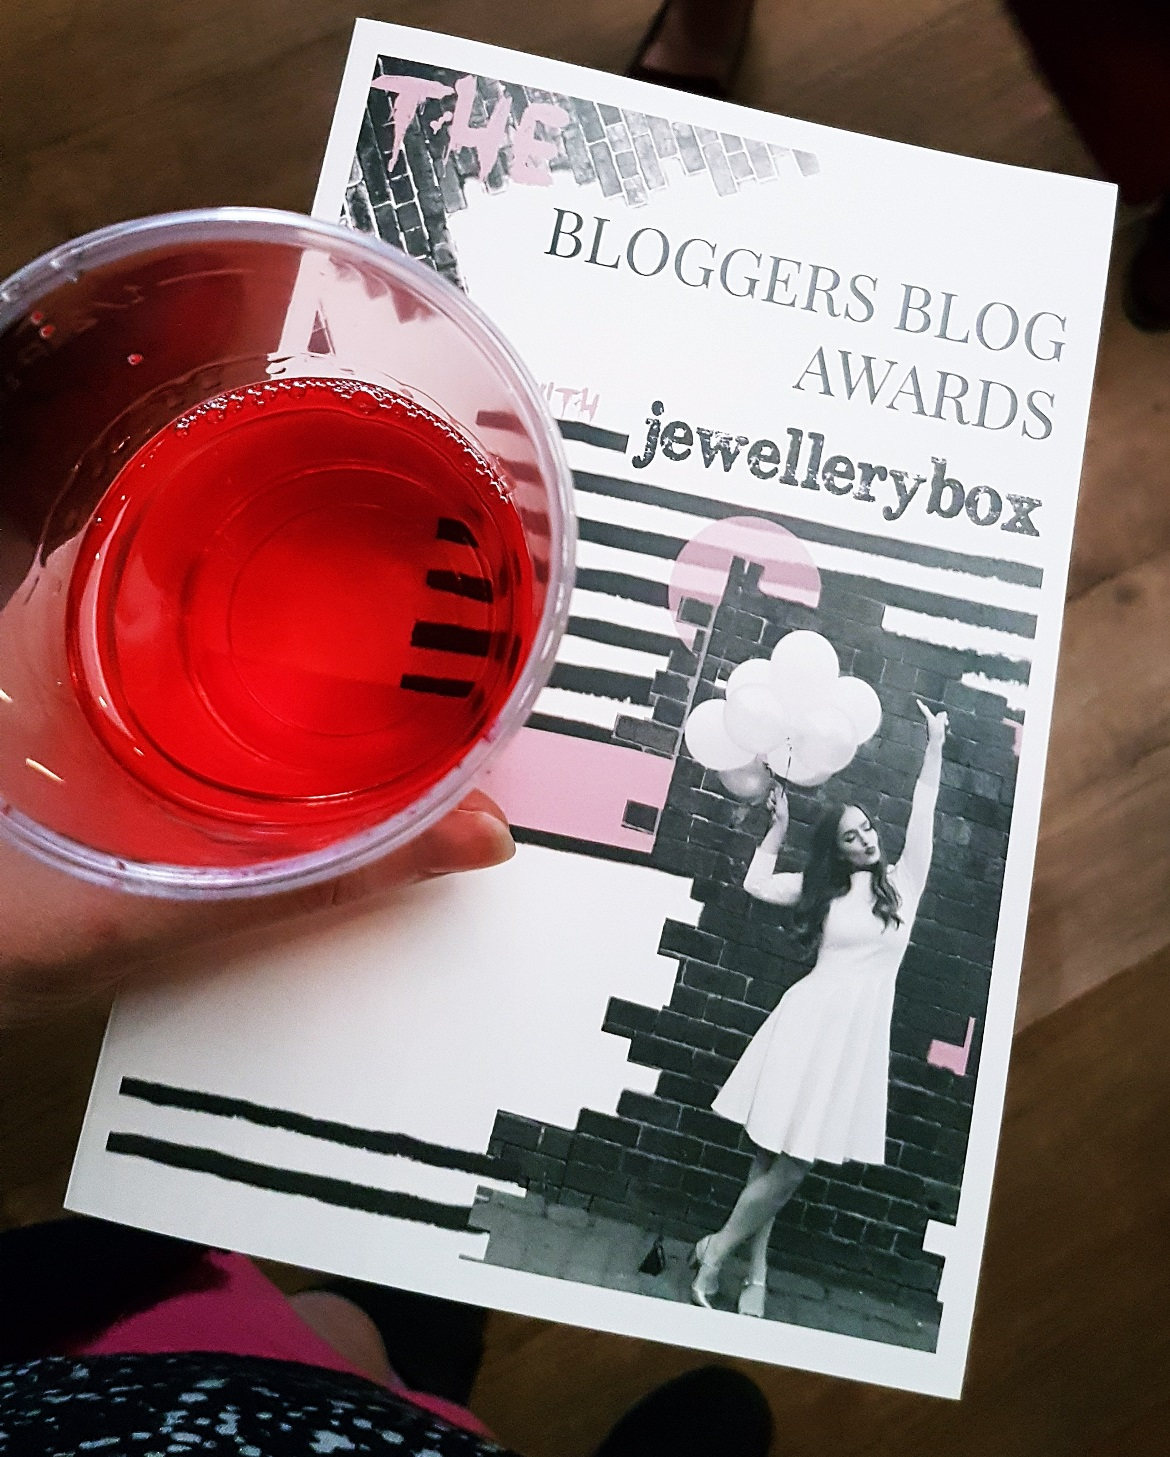 Drinking wine at the Bloggers Blog Awards - September Monthly Recap by BeckyBecky Blogs